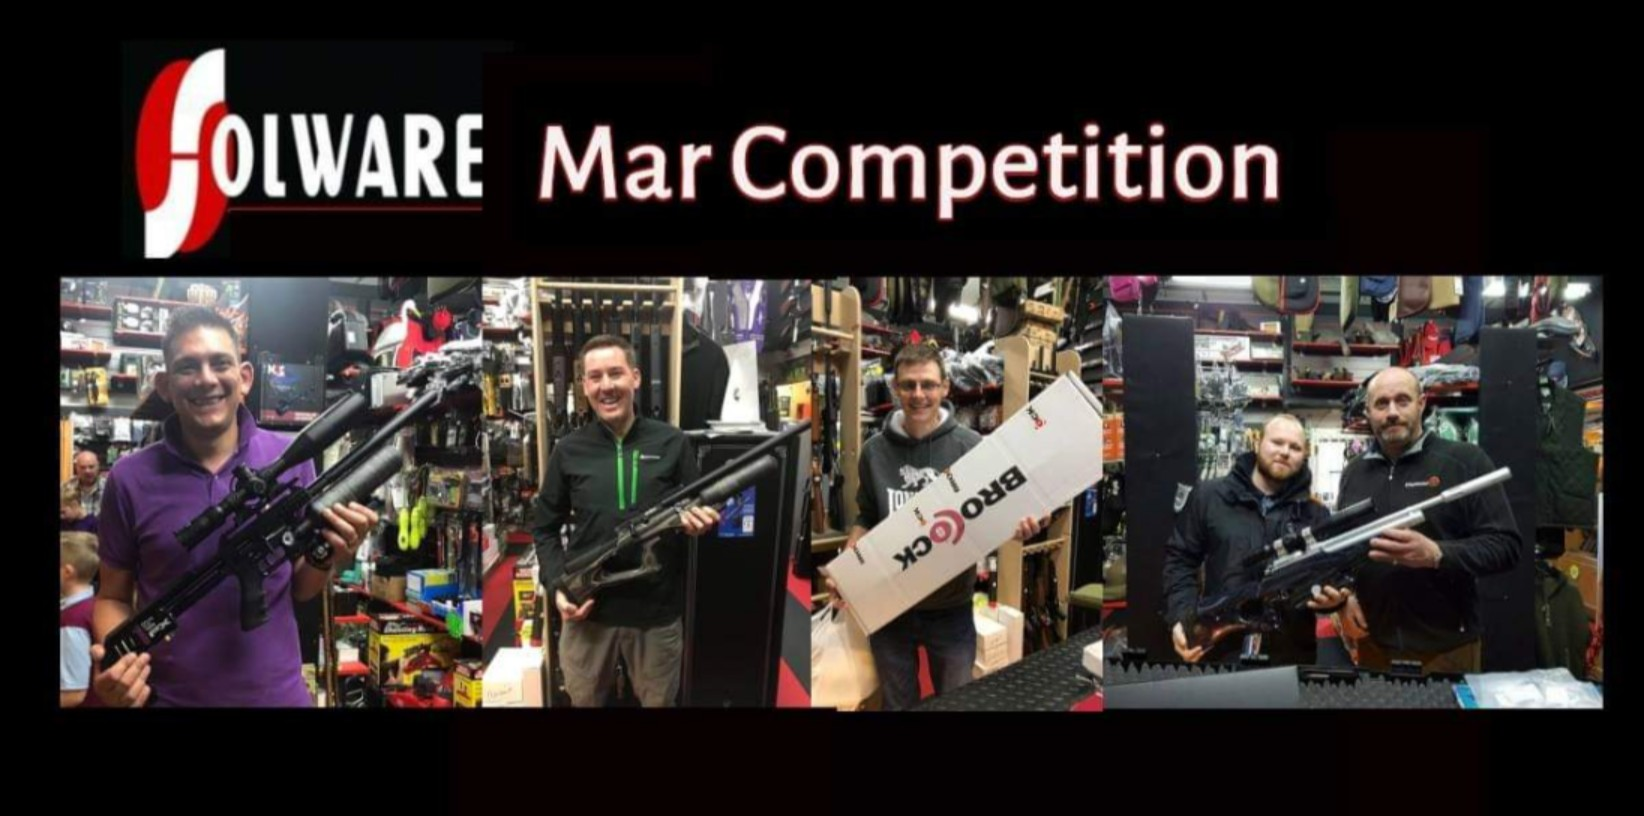 MAR Competition